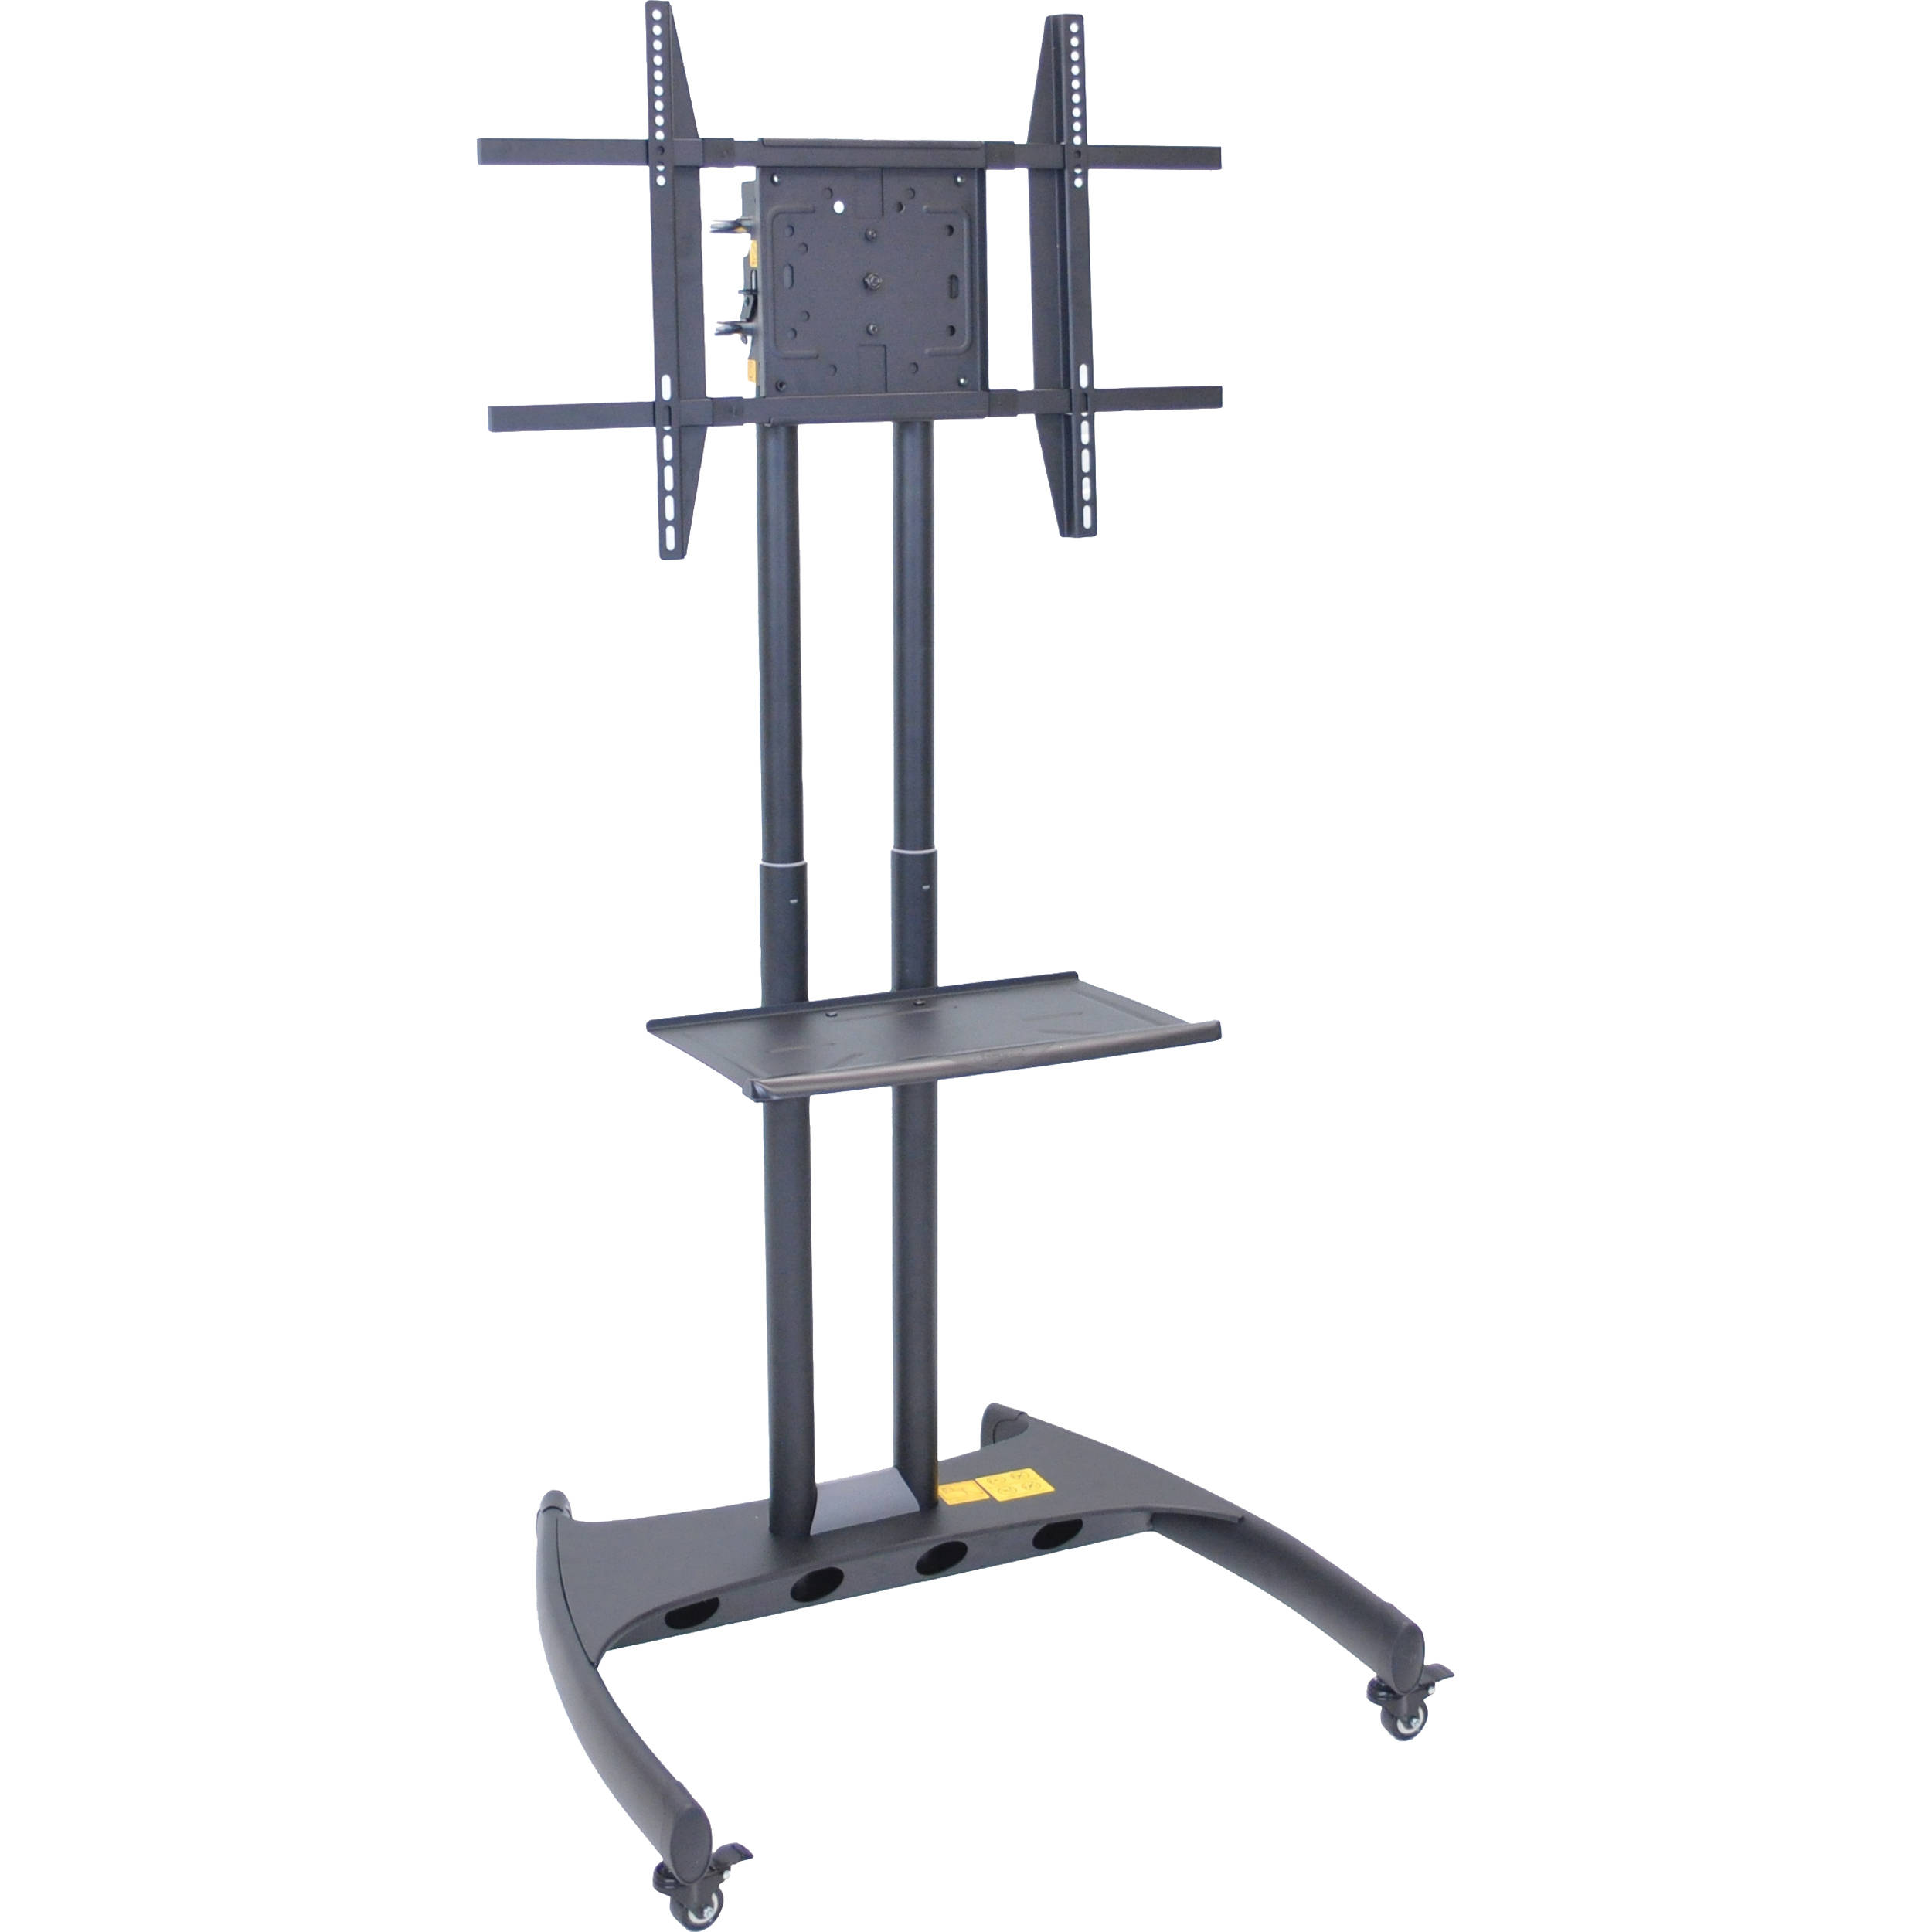 Luxor Fp3500 Adjustable Height Lcd Tv Stand Fp3500 Bh Photo